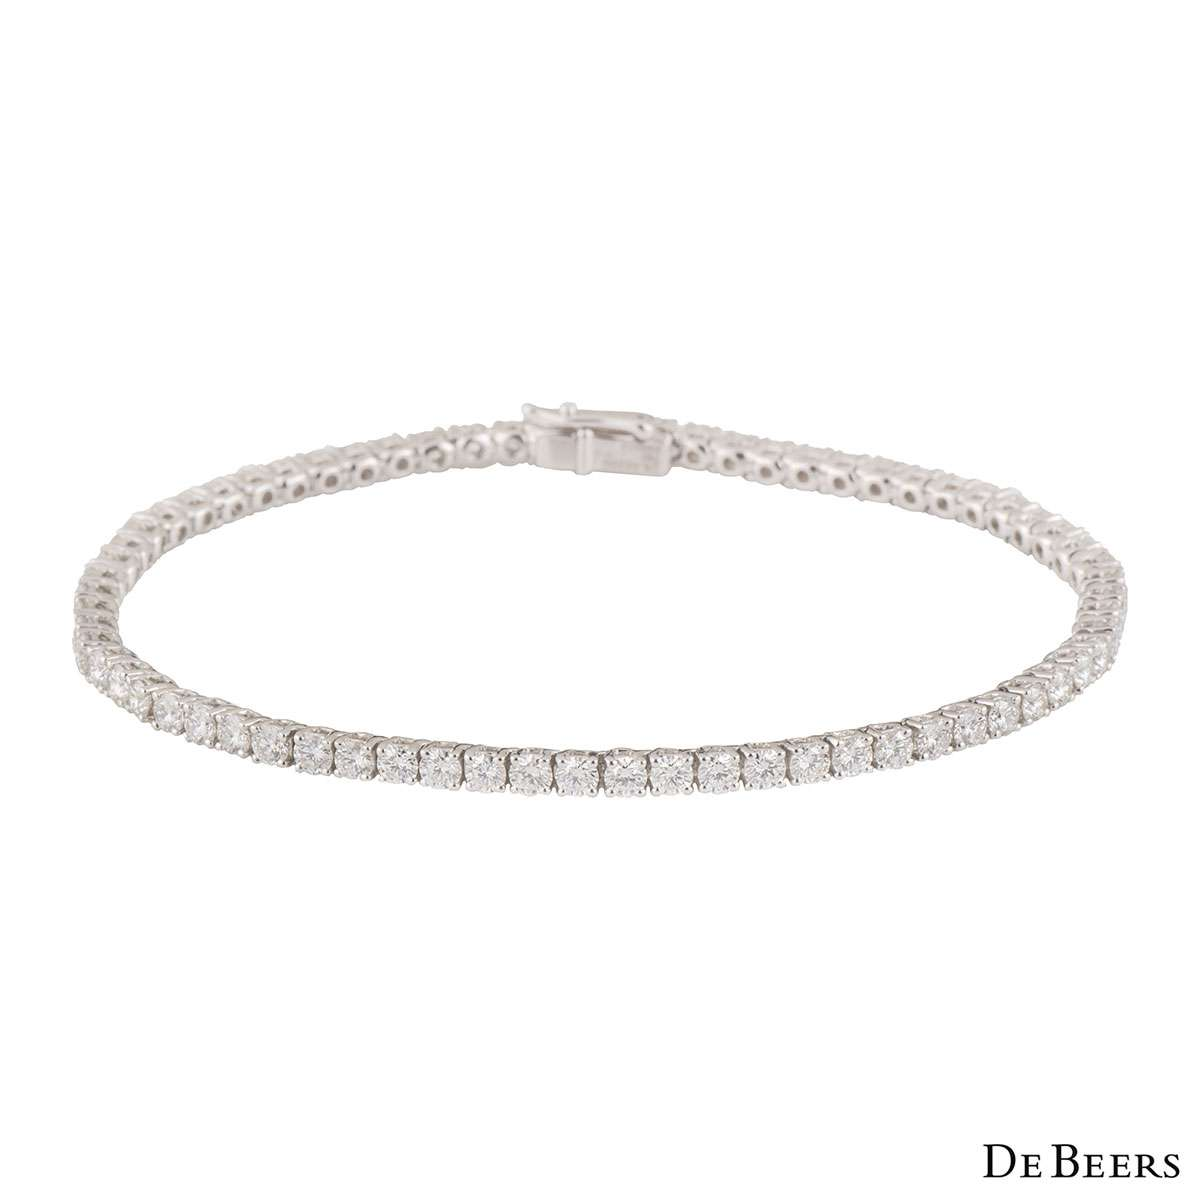 jewelry carat fascinating bracelets tennis white round nl buy diamonds diamond bracelet online eternity gold wg in